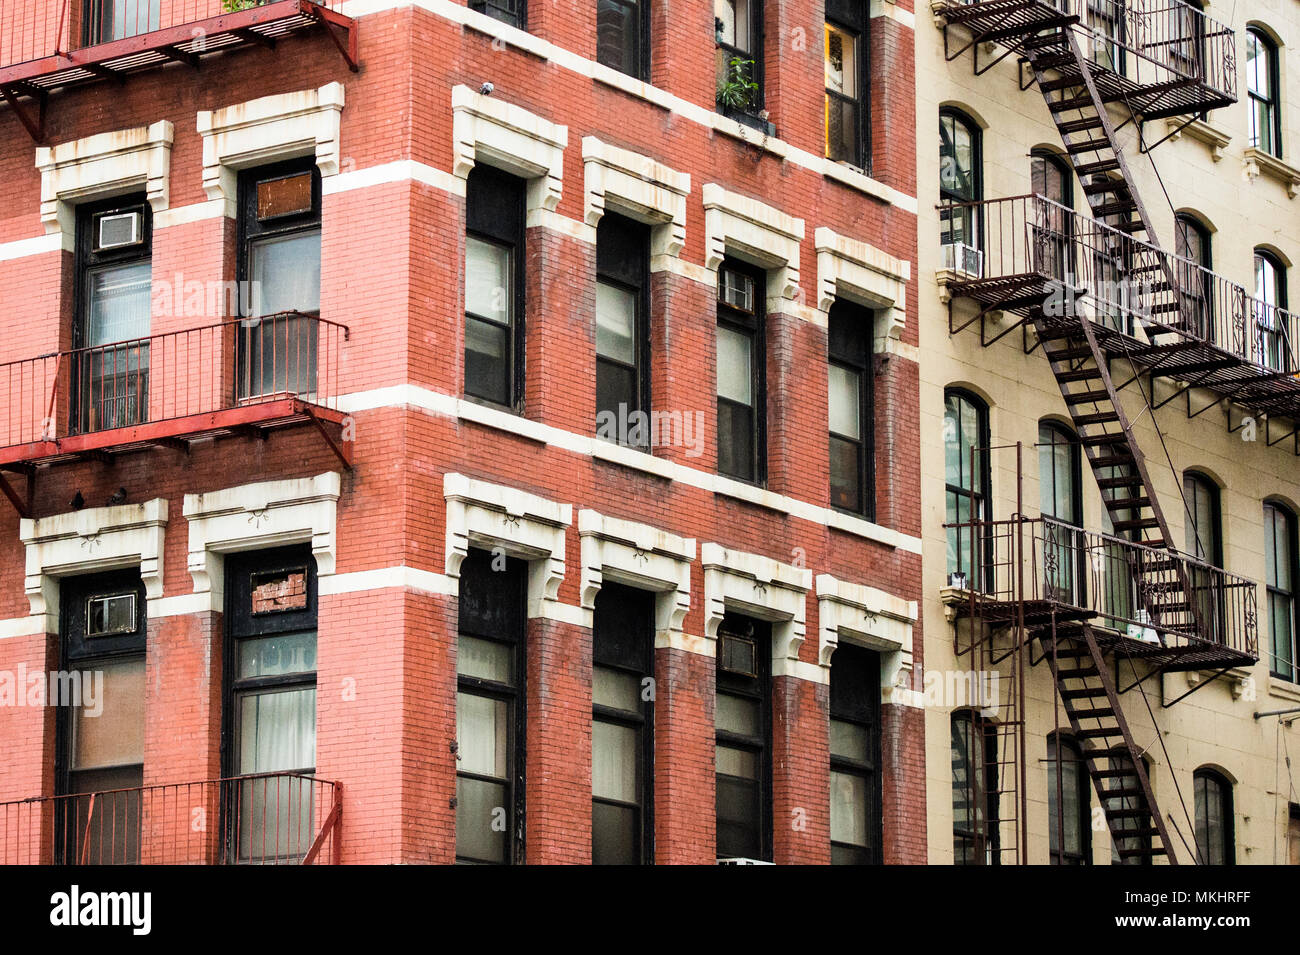 Close-up view of New York City style bâtiments avec escaliers de secours le long de Mott street dans le quartier de Chinatown Manhattan NYC. Photo Stock